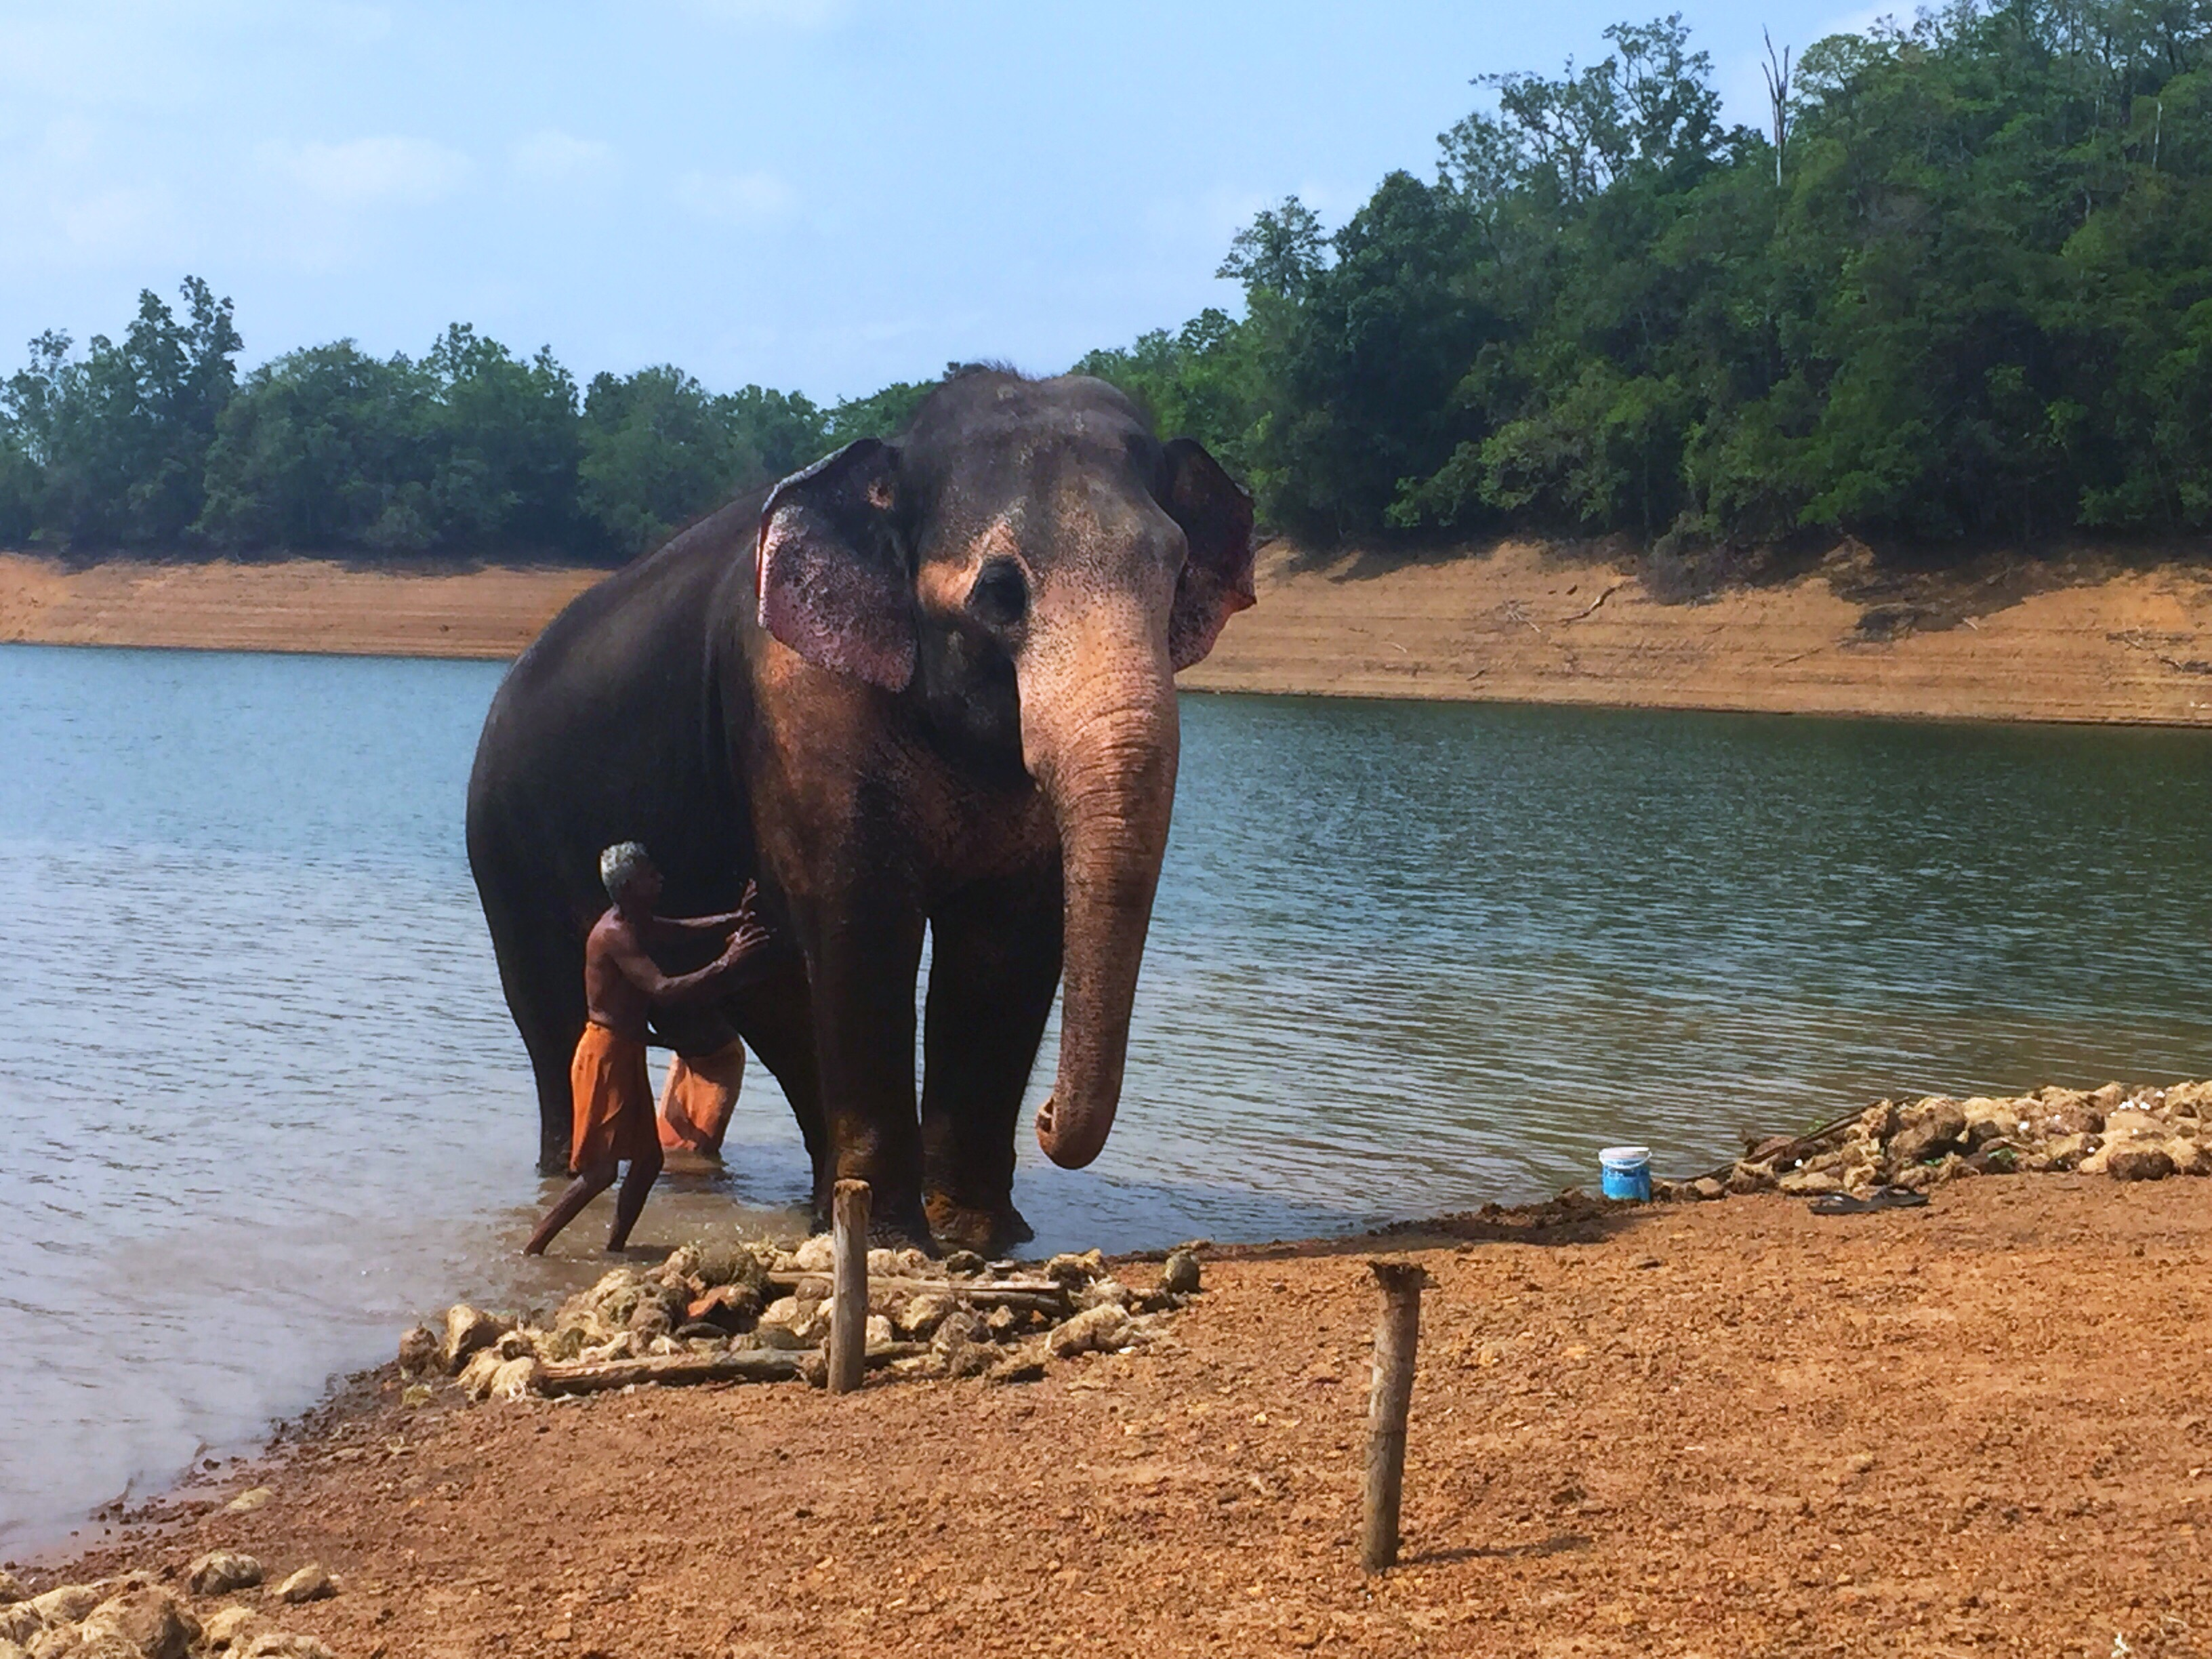 Kottoor Elephant Rehabilitation Centre